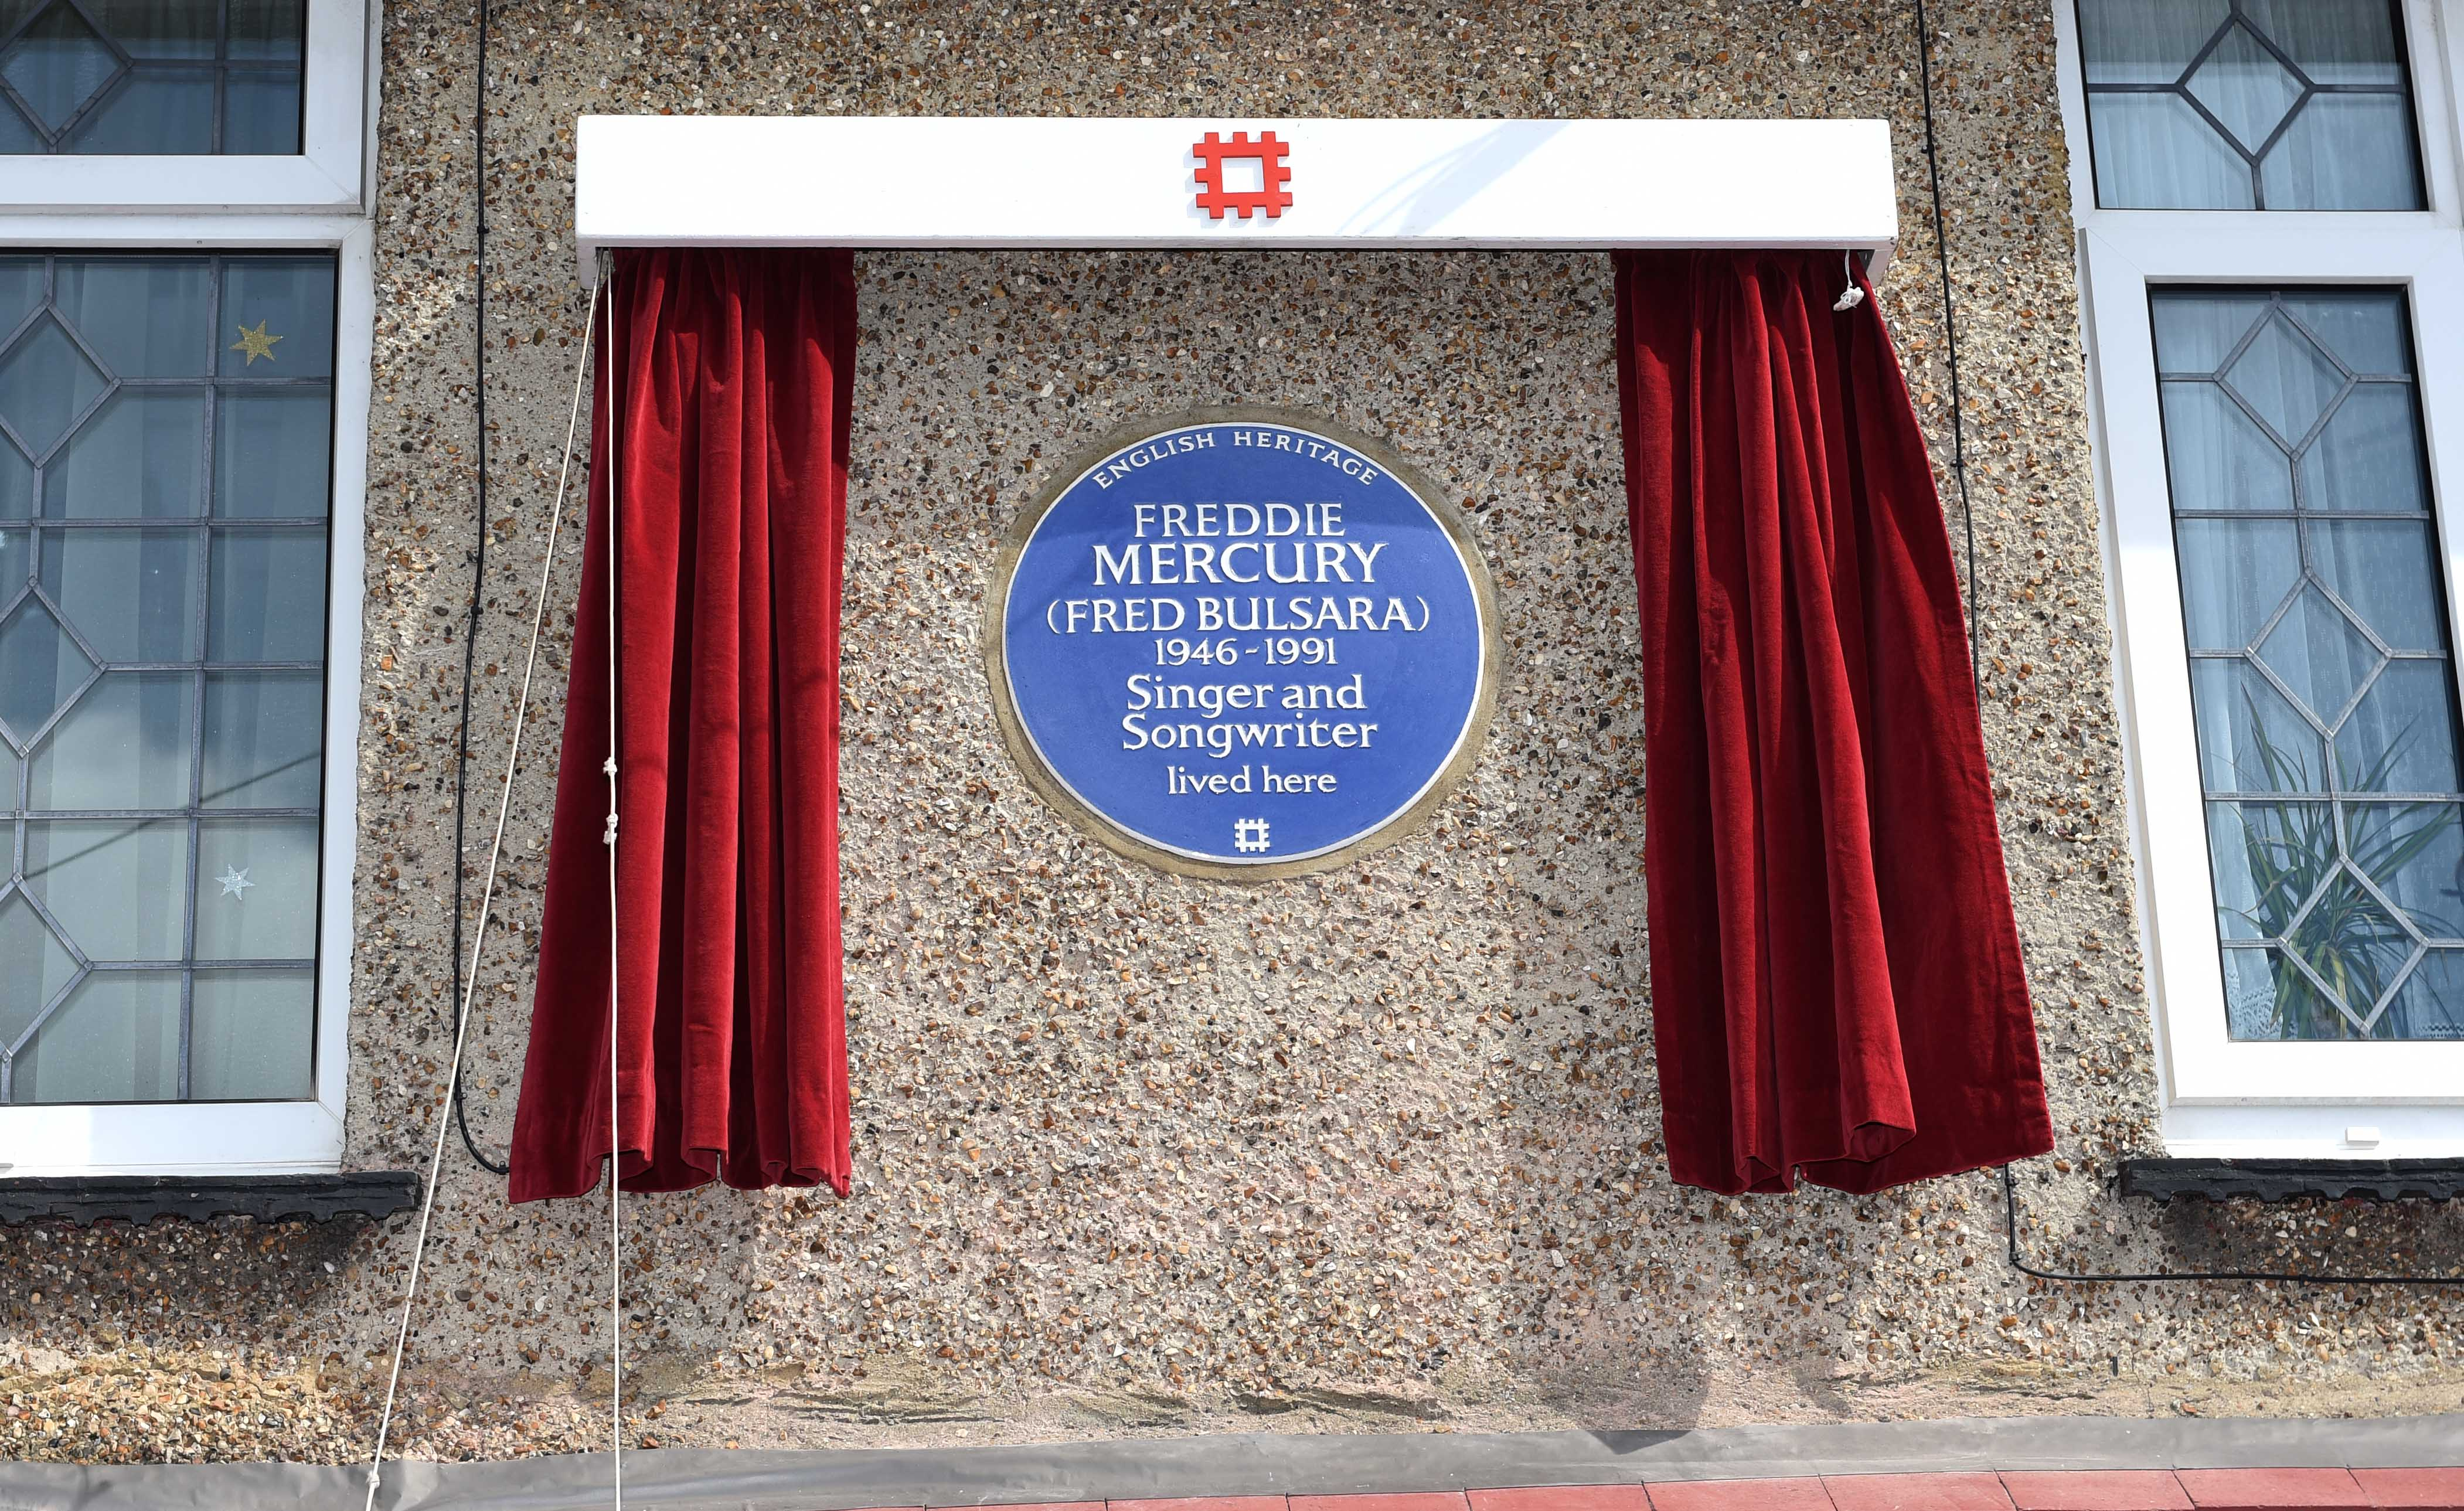 The unveiling of an English Heritage Blue Plaque, commemorating where Freddie Mercury lived in Feltham, England, on Sept. 1, 2016.